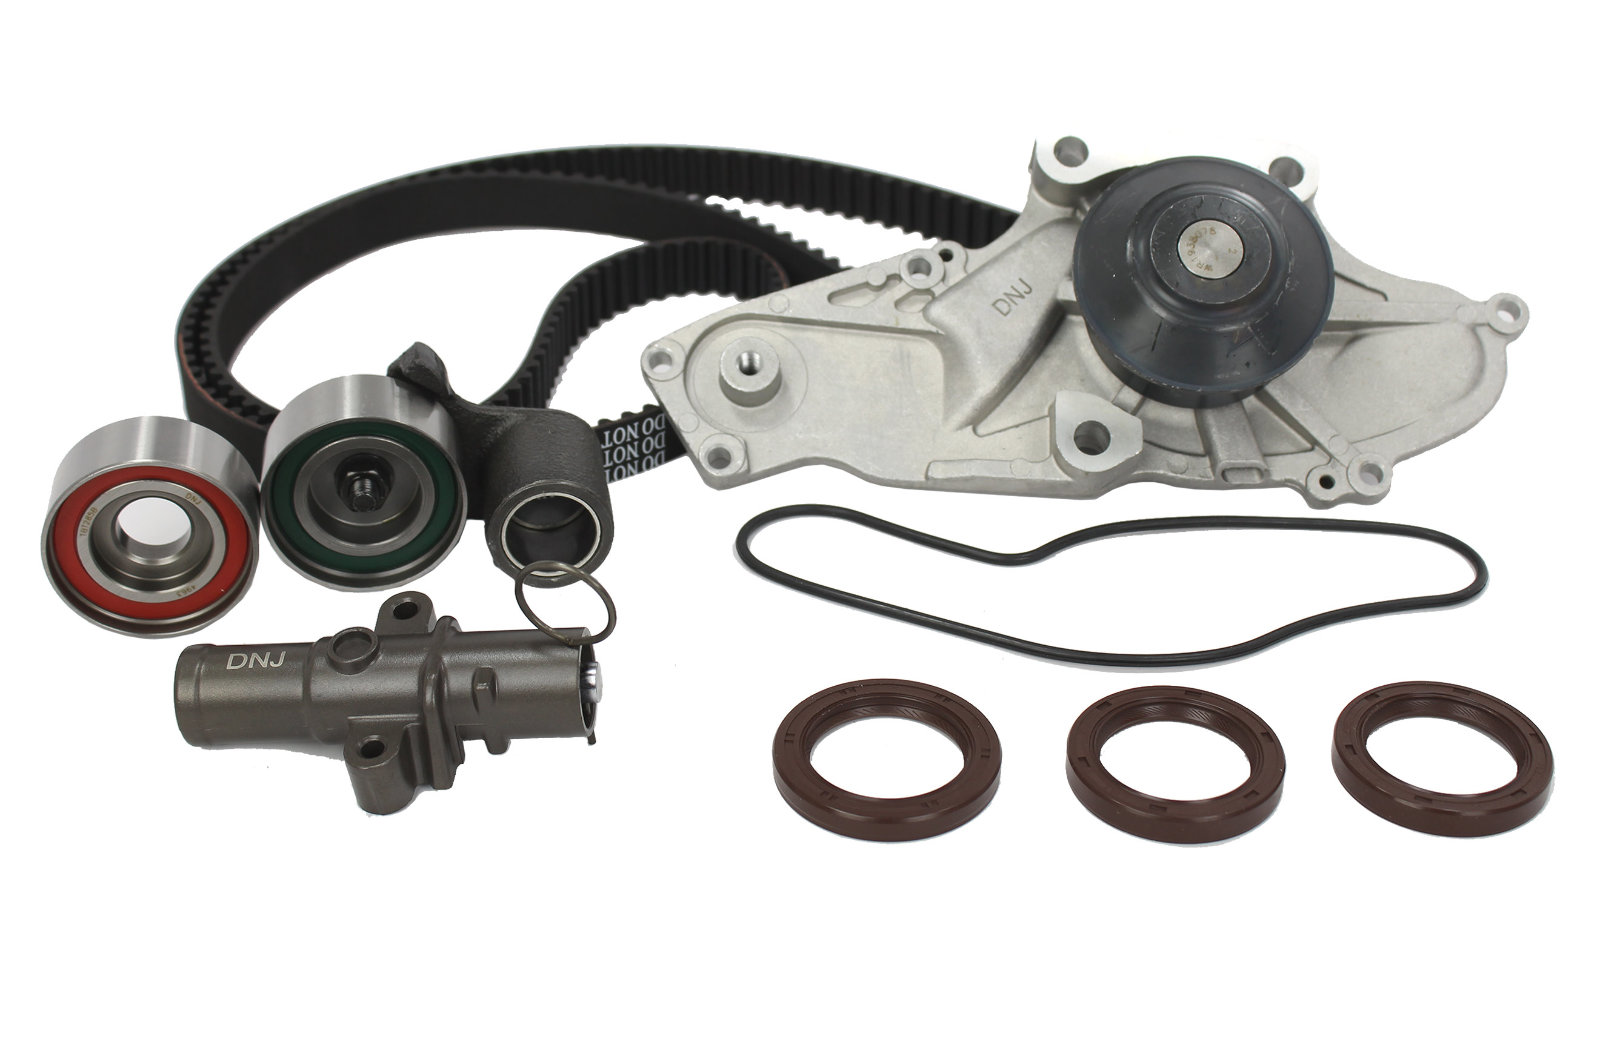 Details about Acura Timing Belt Kit With Water Pump 2003 to 2010 MDX on